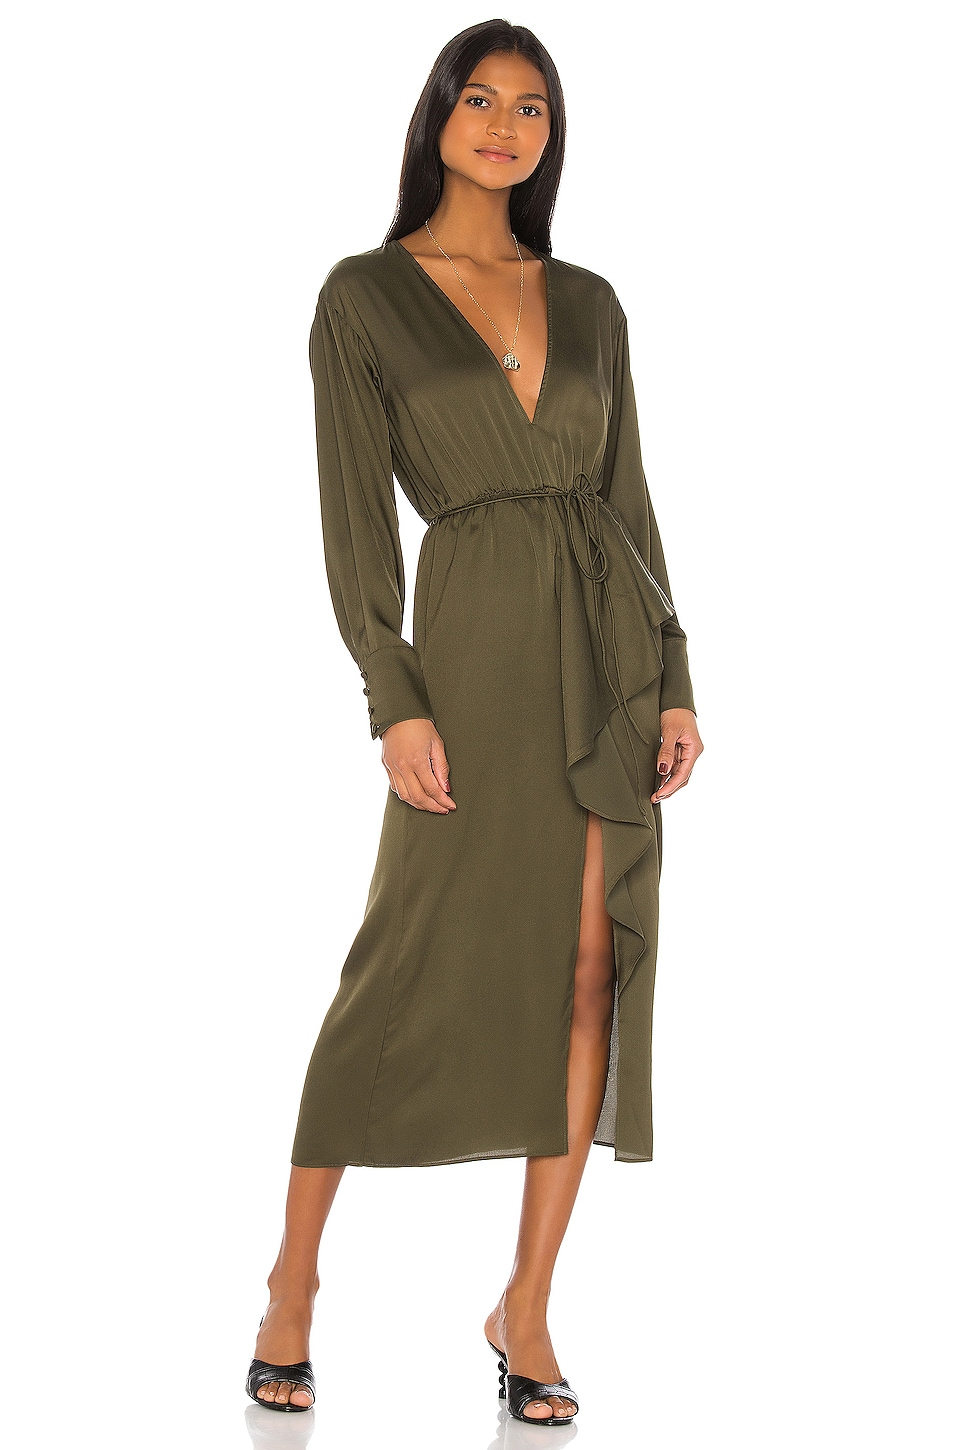 L'Academie The Tracee Midi Dress in Olive Green